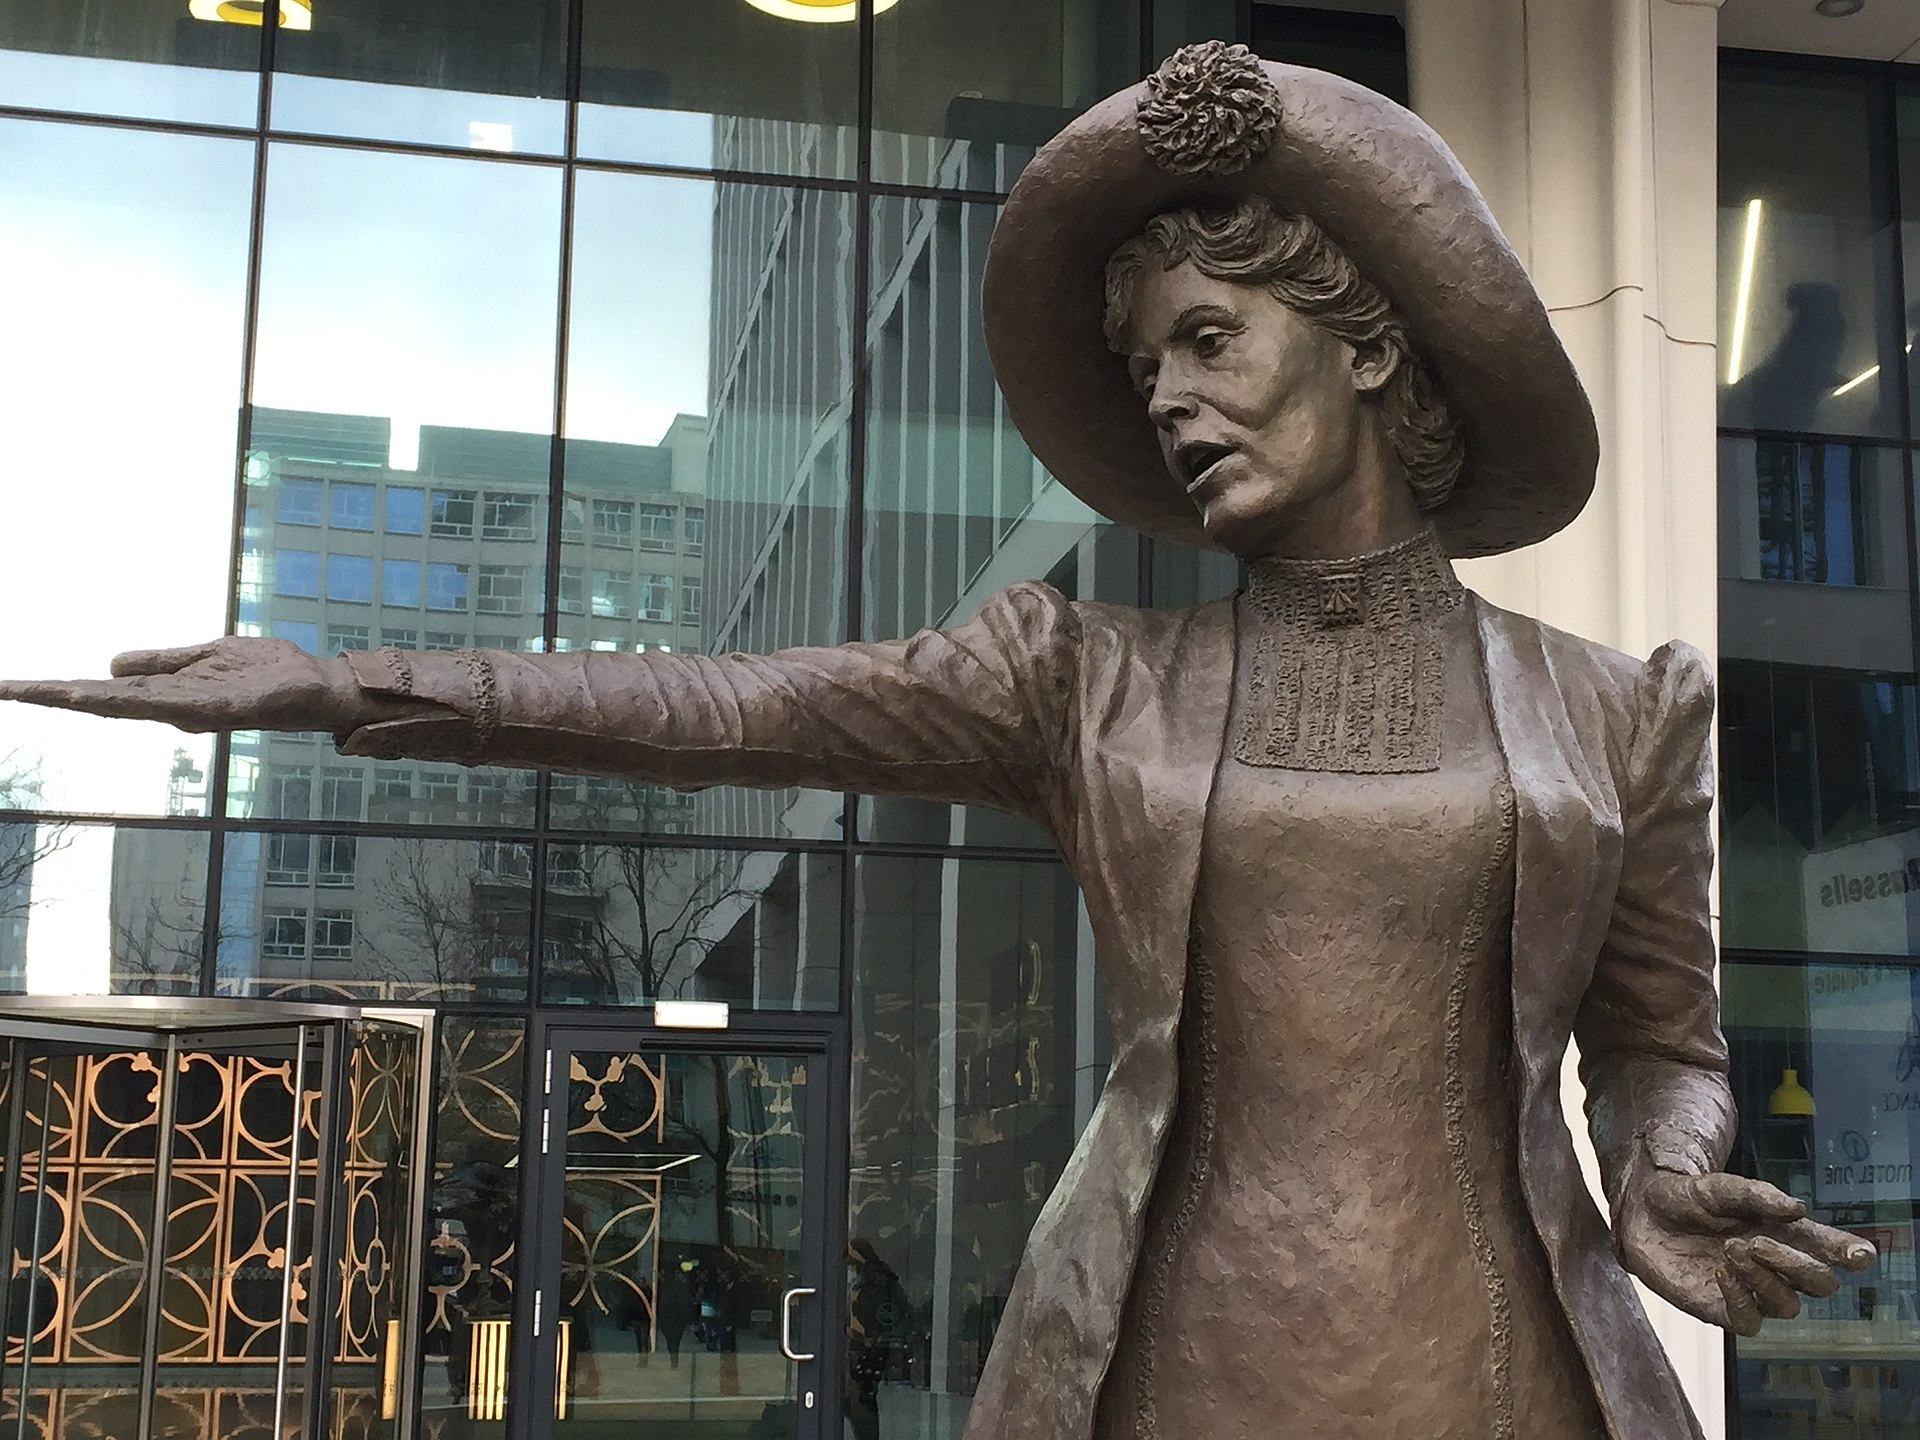 'Rise Up, Women' bronze statue of Emmeline Pankhurst by Hazel Reeves, Manchester, 2018